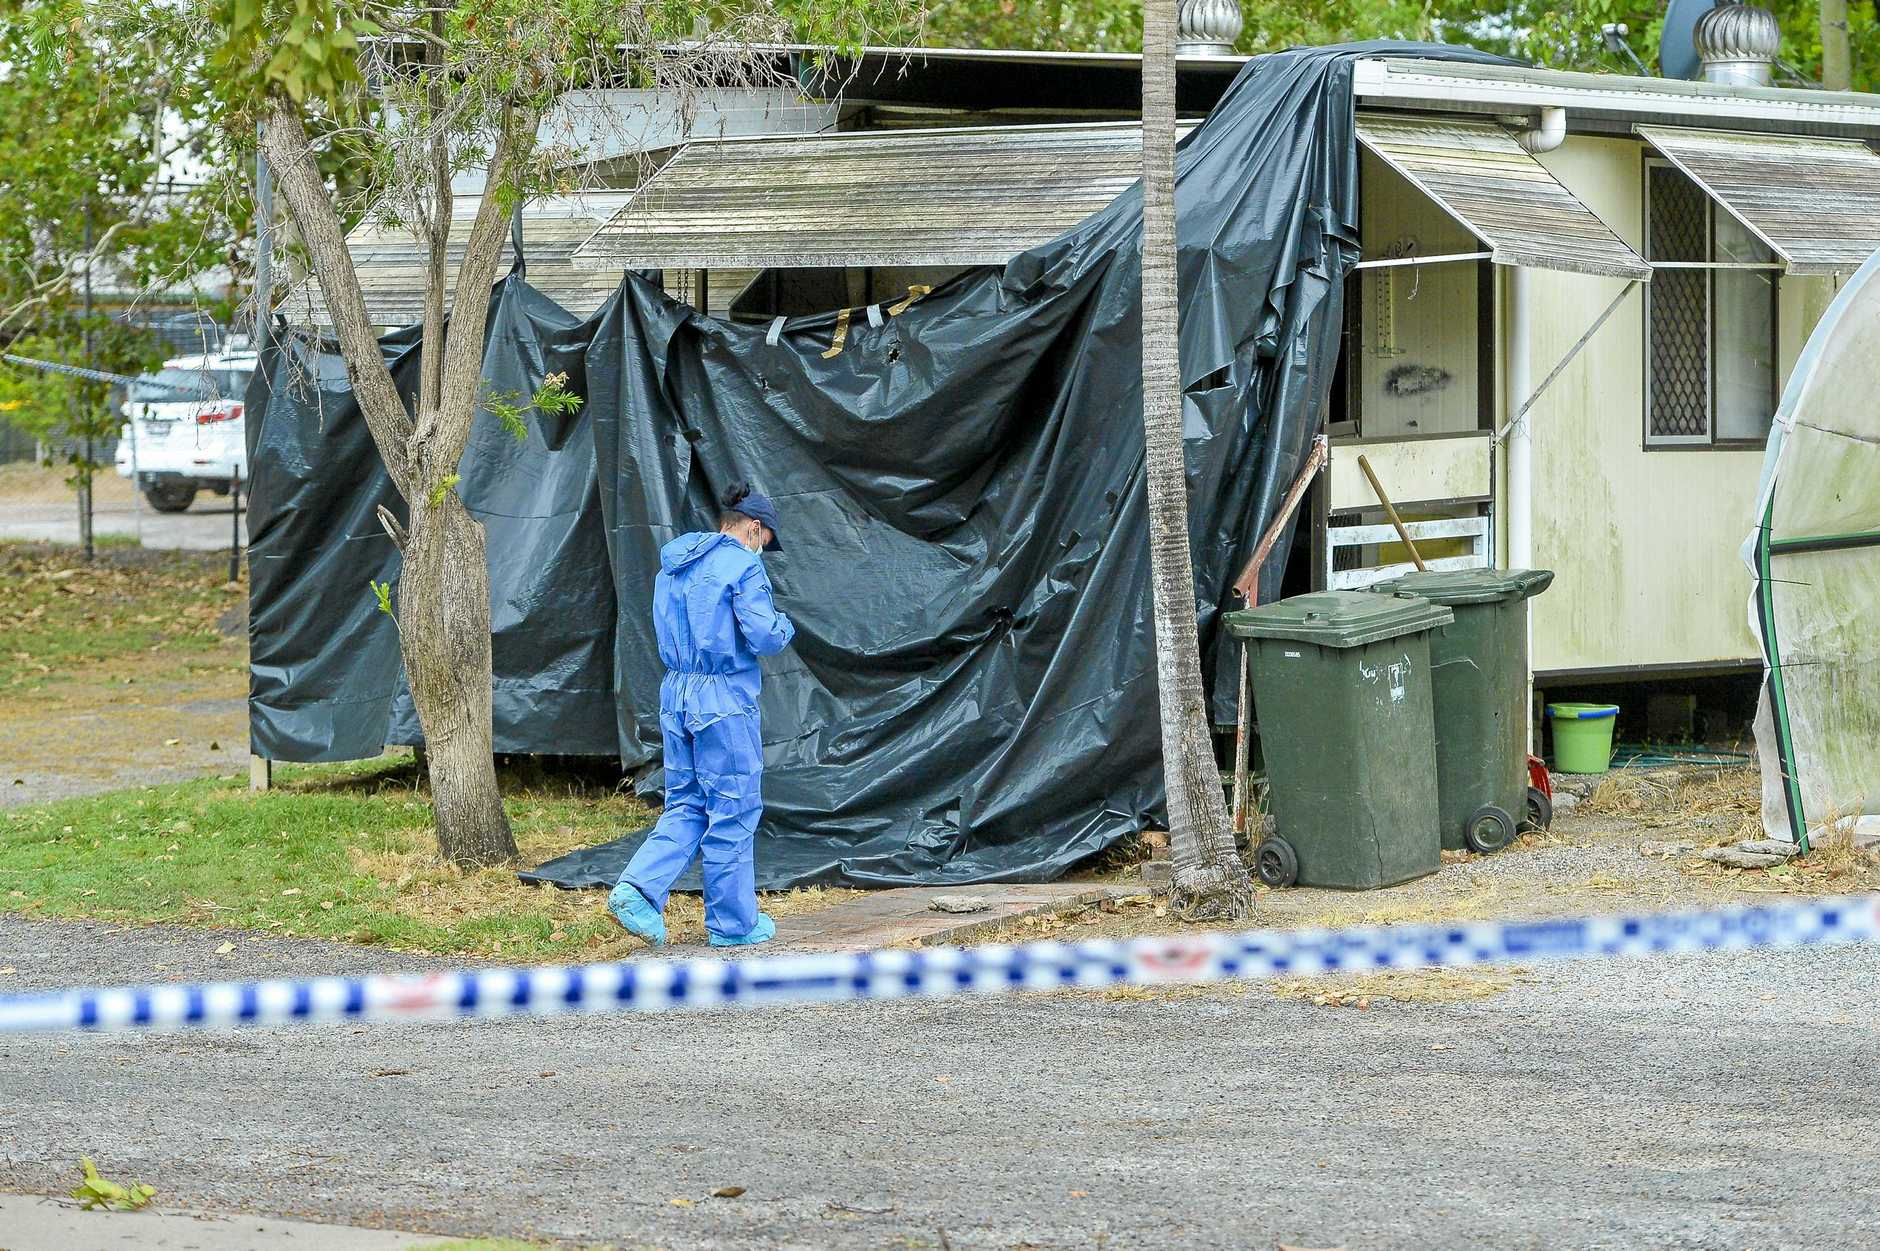 Police are investigating after two suspected deaths took place at Calliope Caravan Park, late on Thursday afternoon, 6 December 2018.